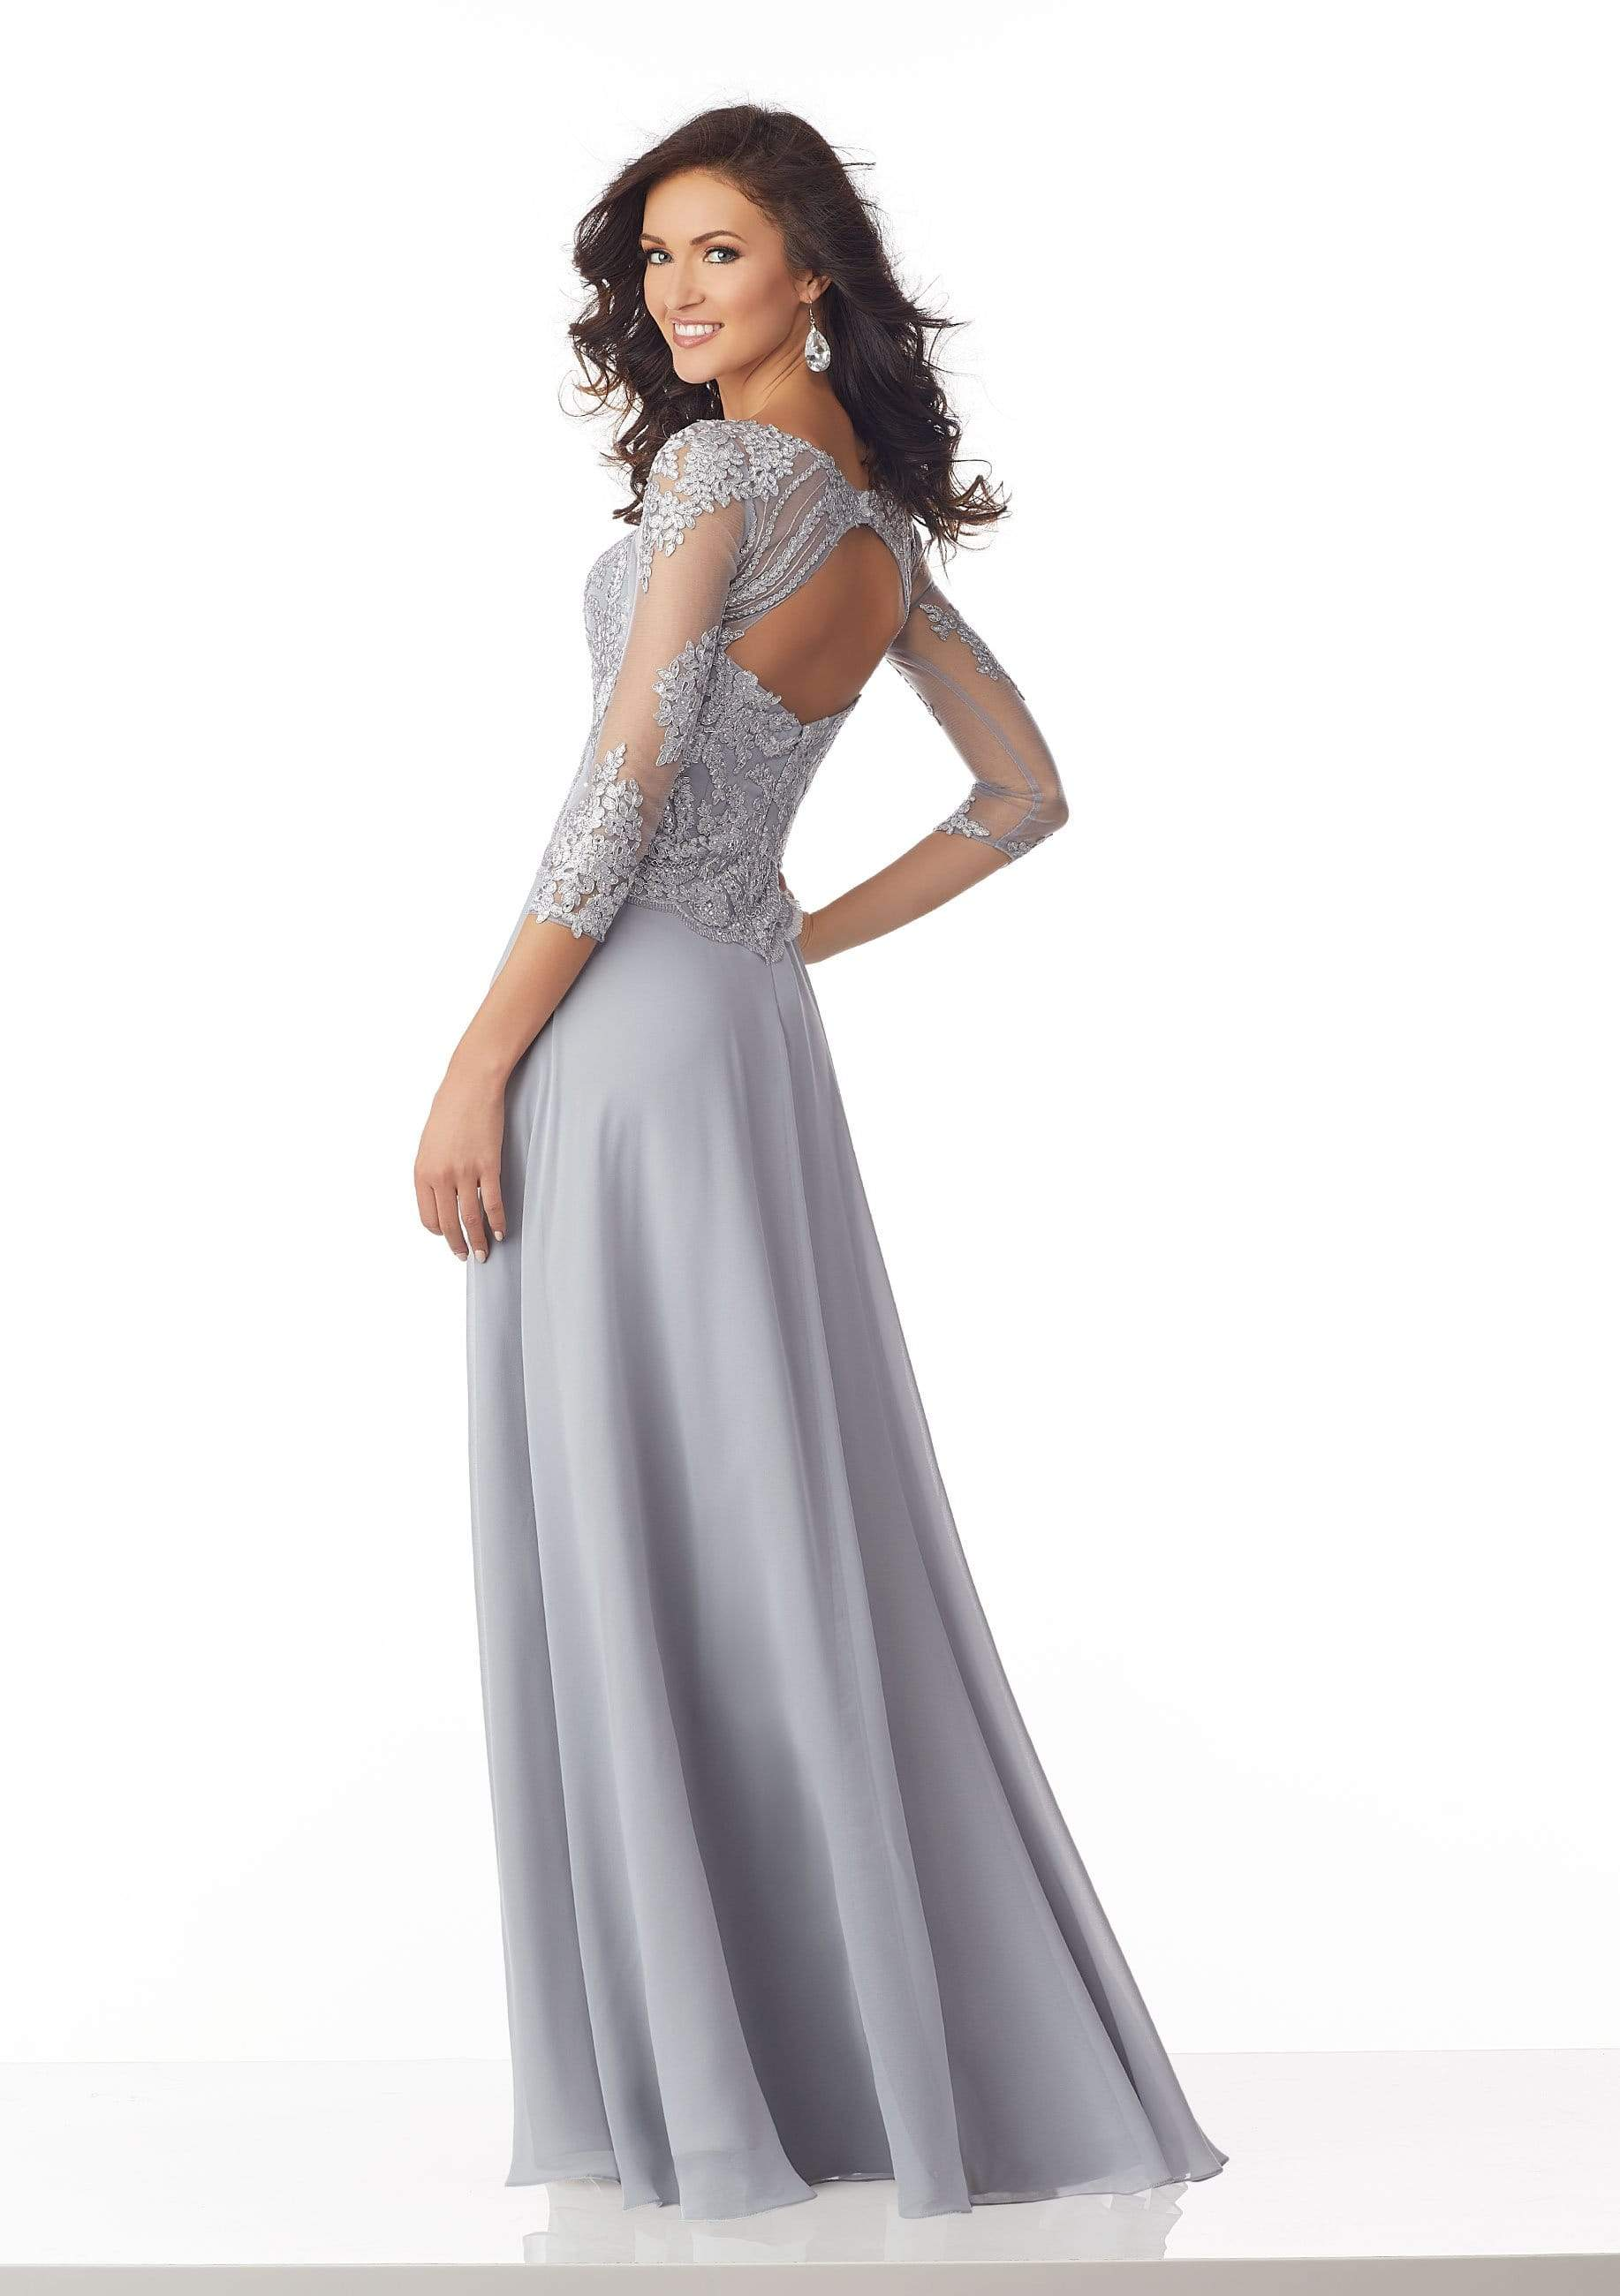 MGNY By Mori Lee - 71813 Metallic Lace A-Line Evening Dress Mother of the Bride Dresses